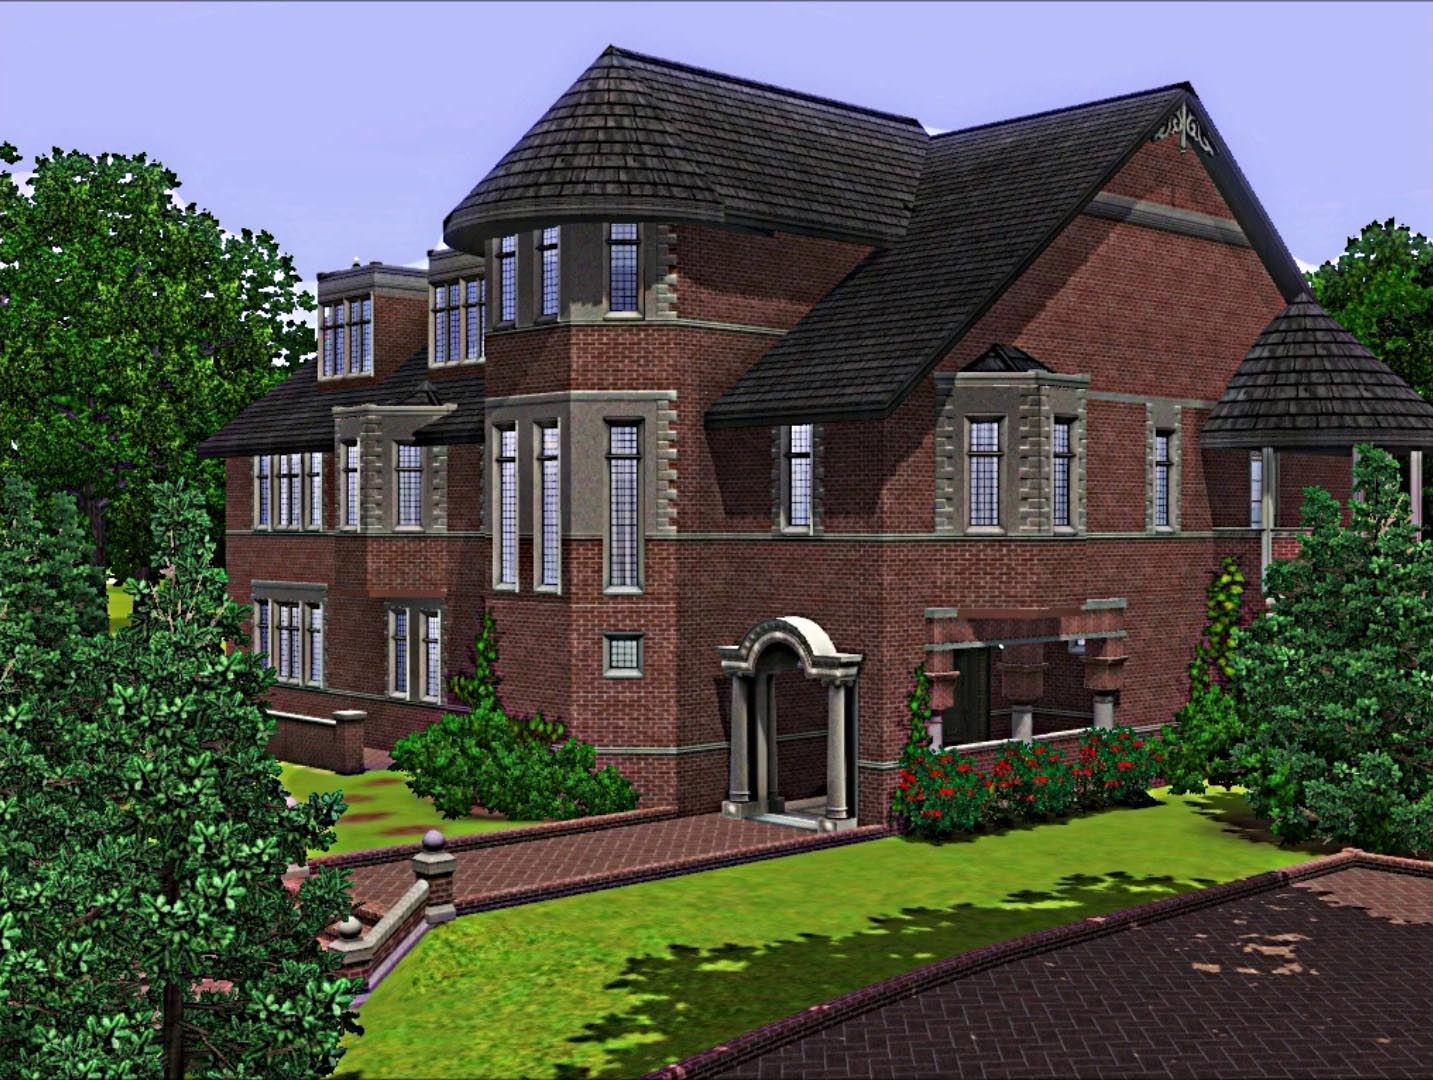 My sims 3 blog american horror story house by wisteriabrayan for 3 story house